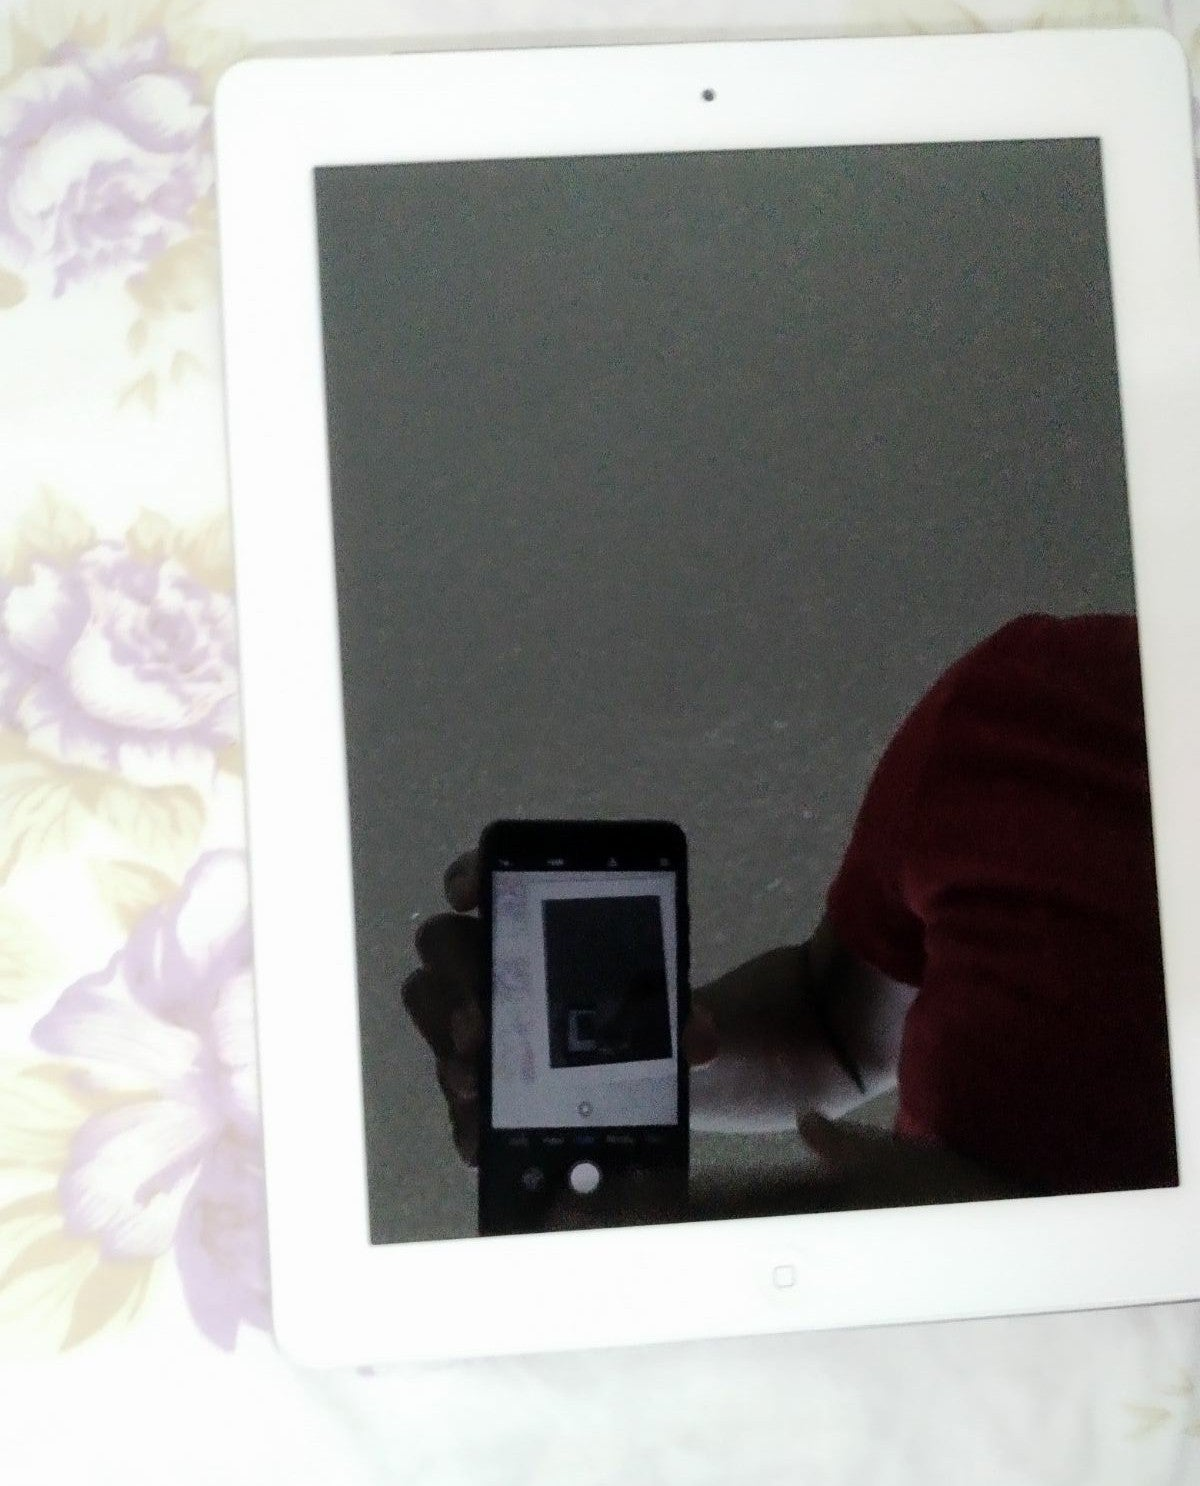 iPad 2 64GB wifi and cell